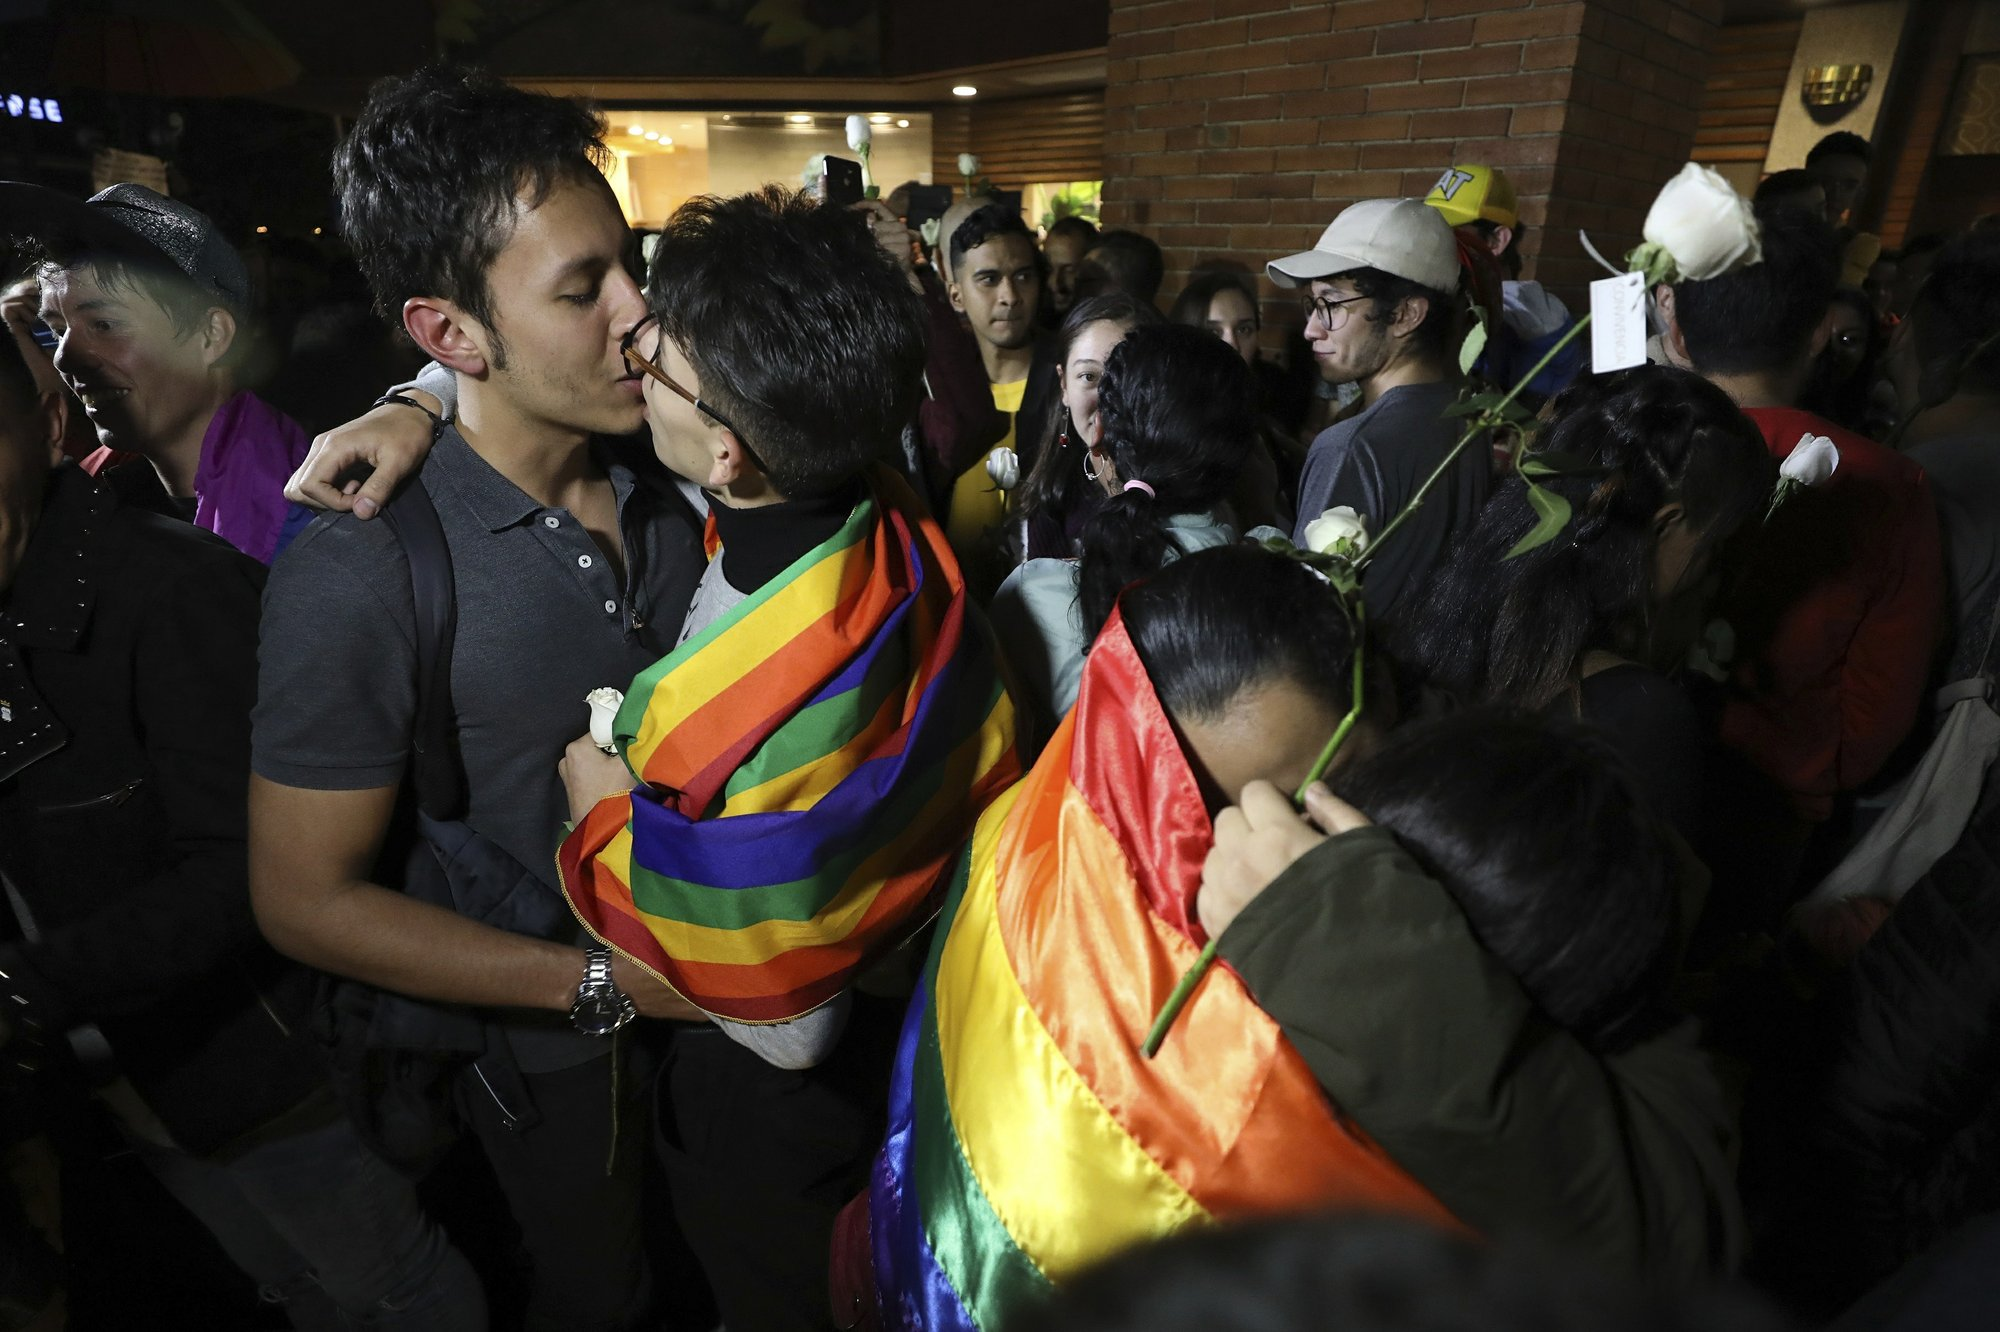 Colombians stage kiss-a-thon in support of LGBT rights